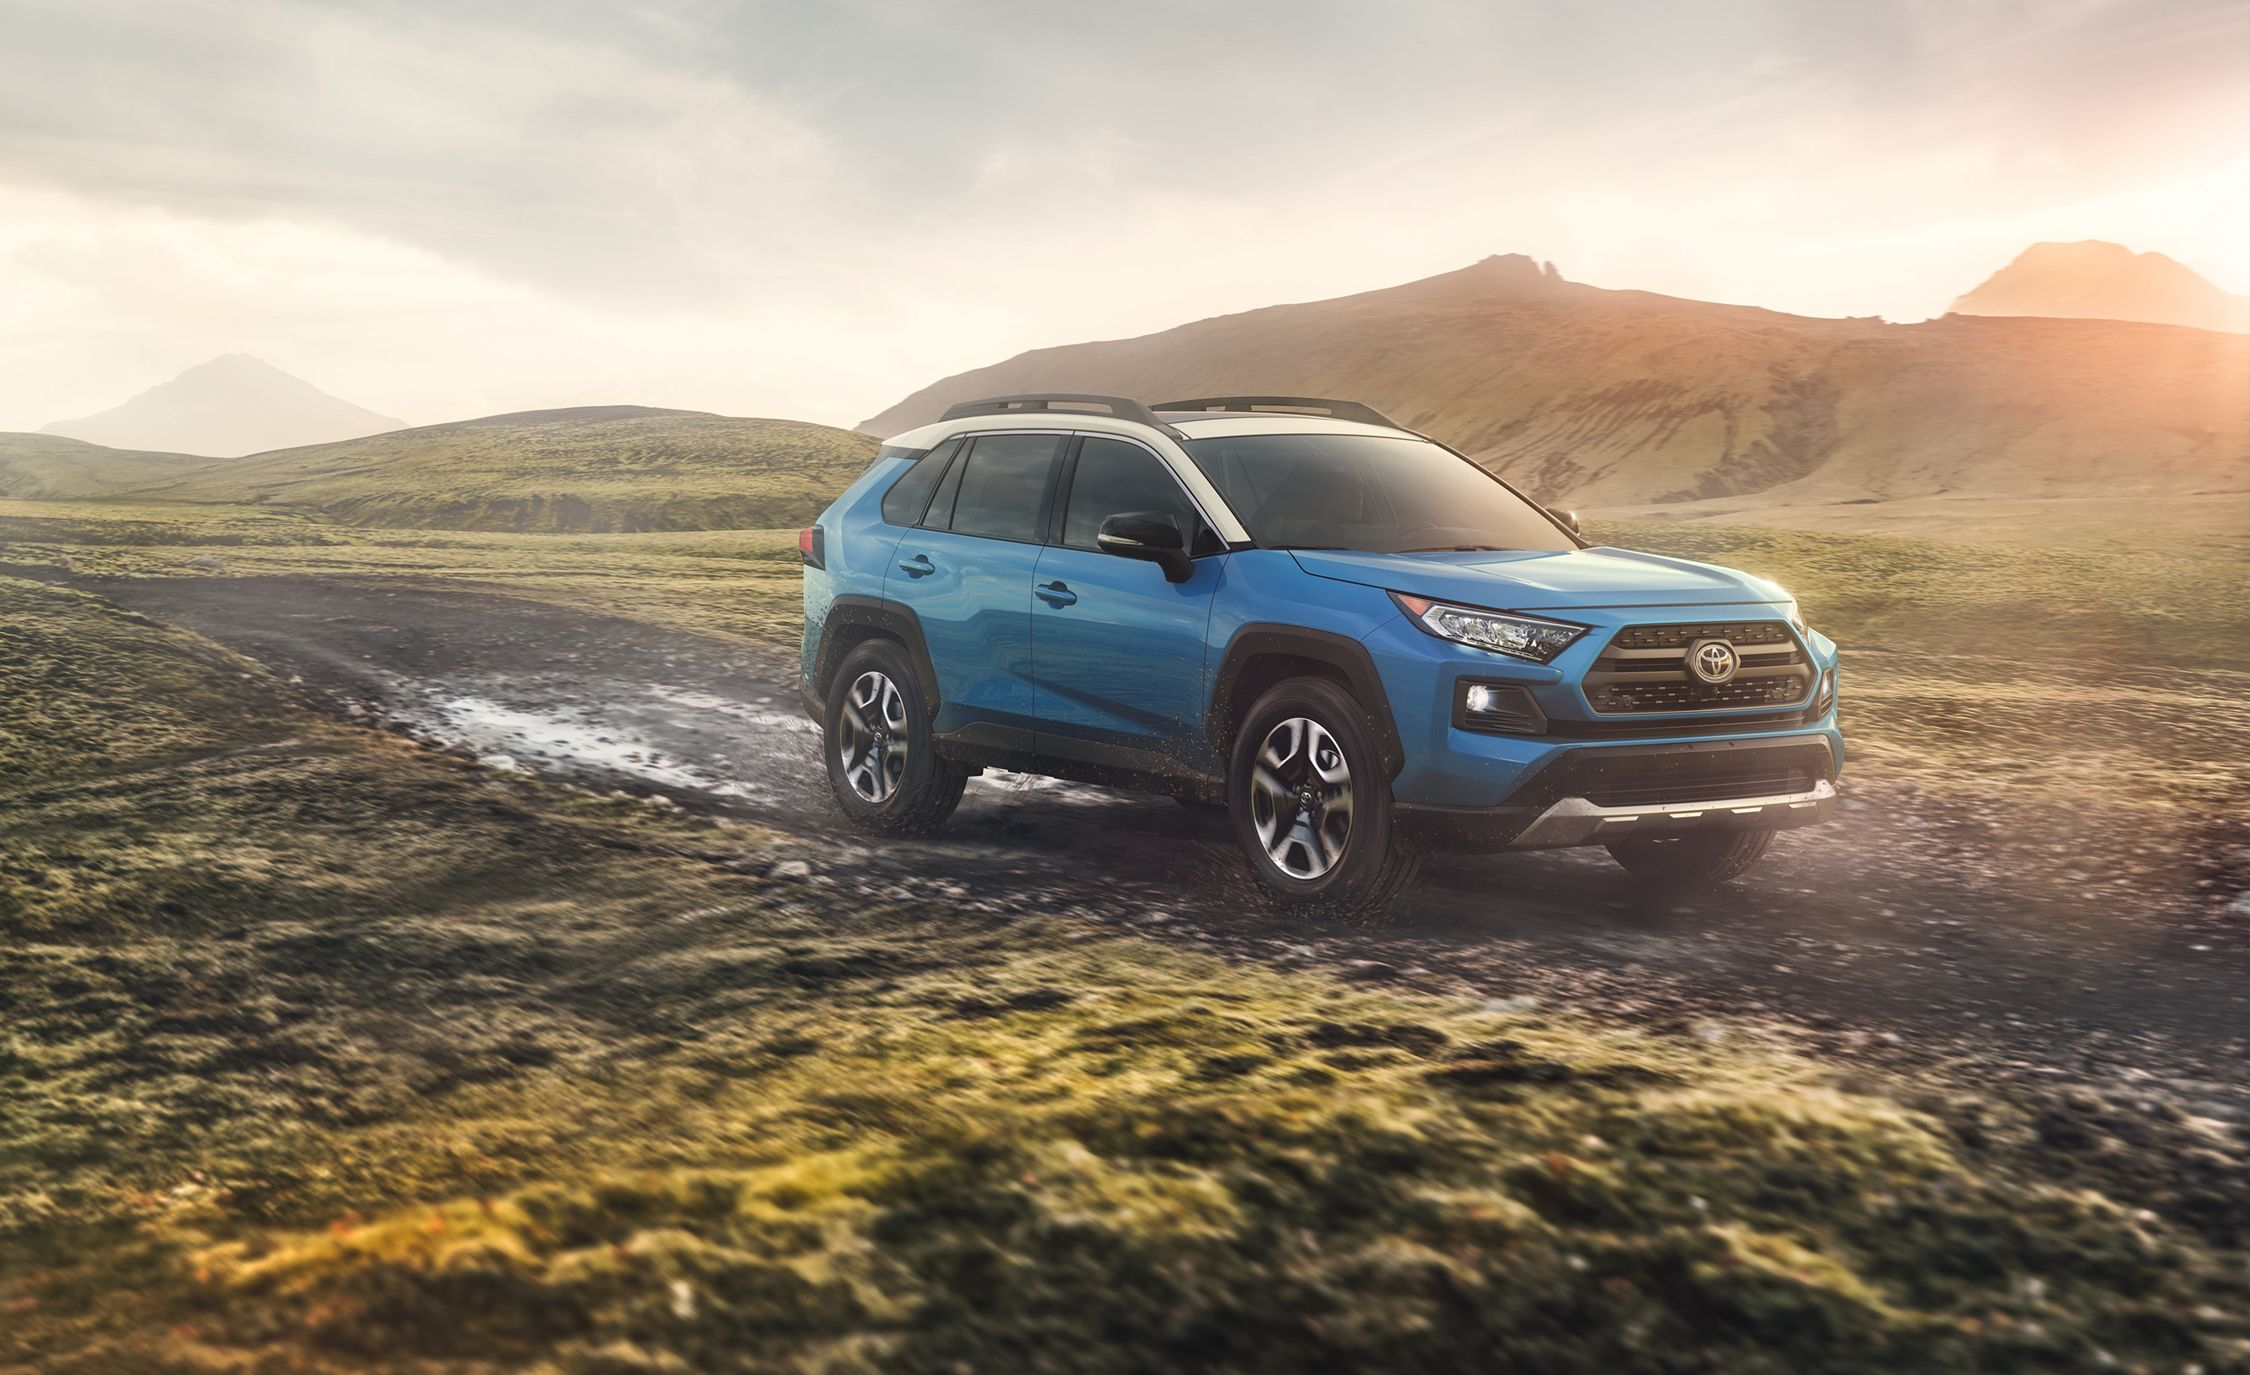 2019 Toyota Rav4 Rav4 Hybrid Official Photos And Info News Car